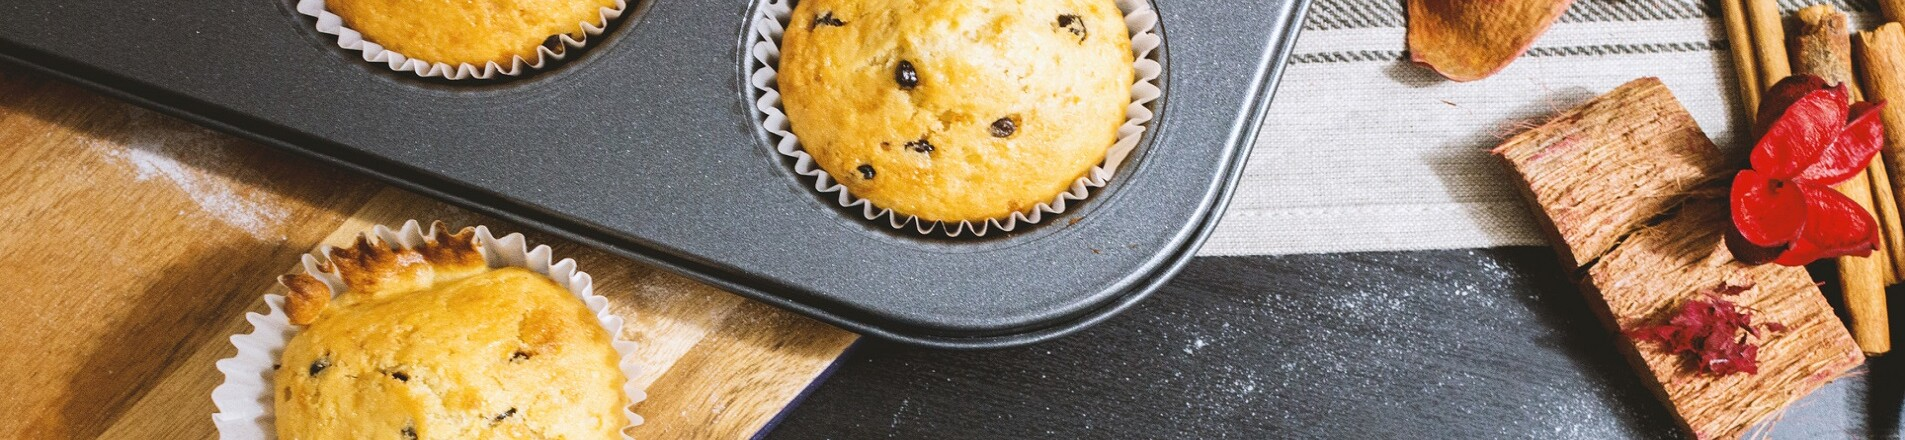 Atkins: Its official, we've caught the baking bug!